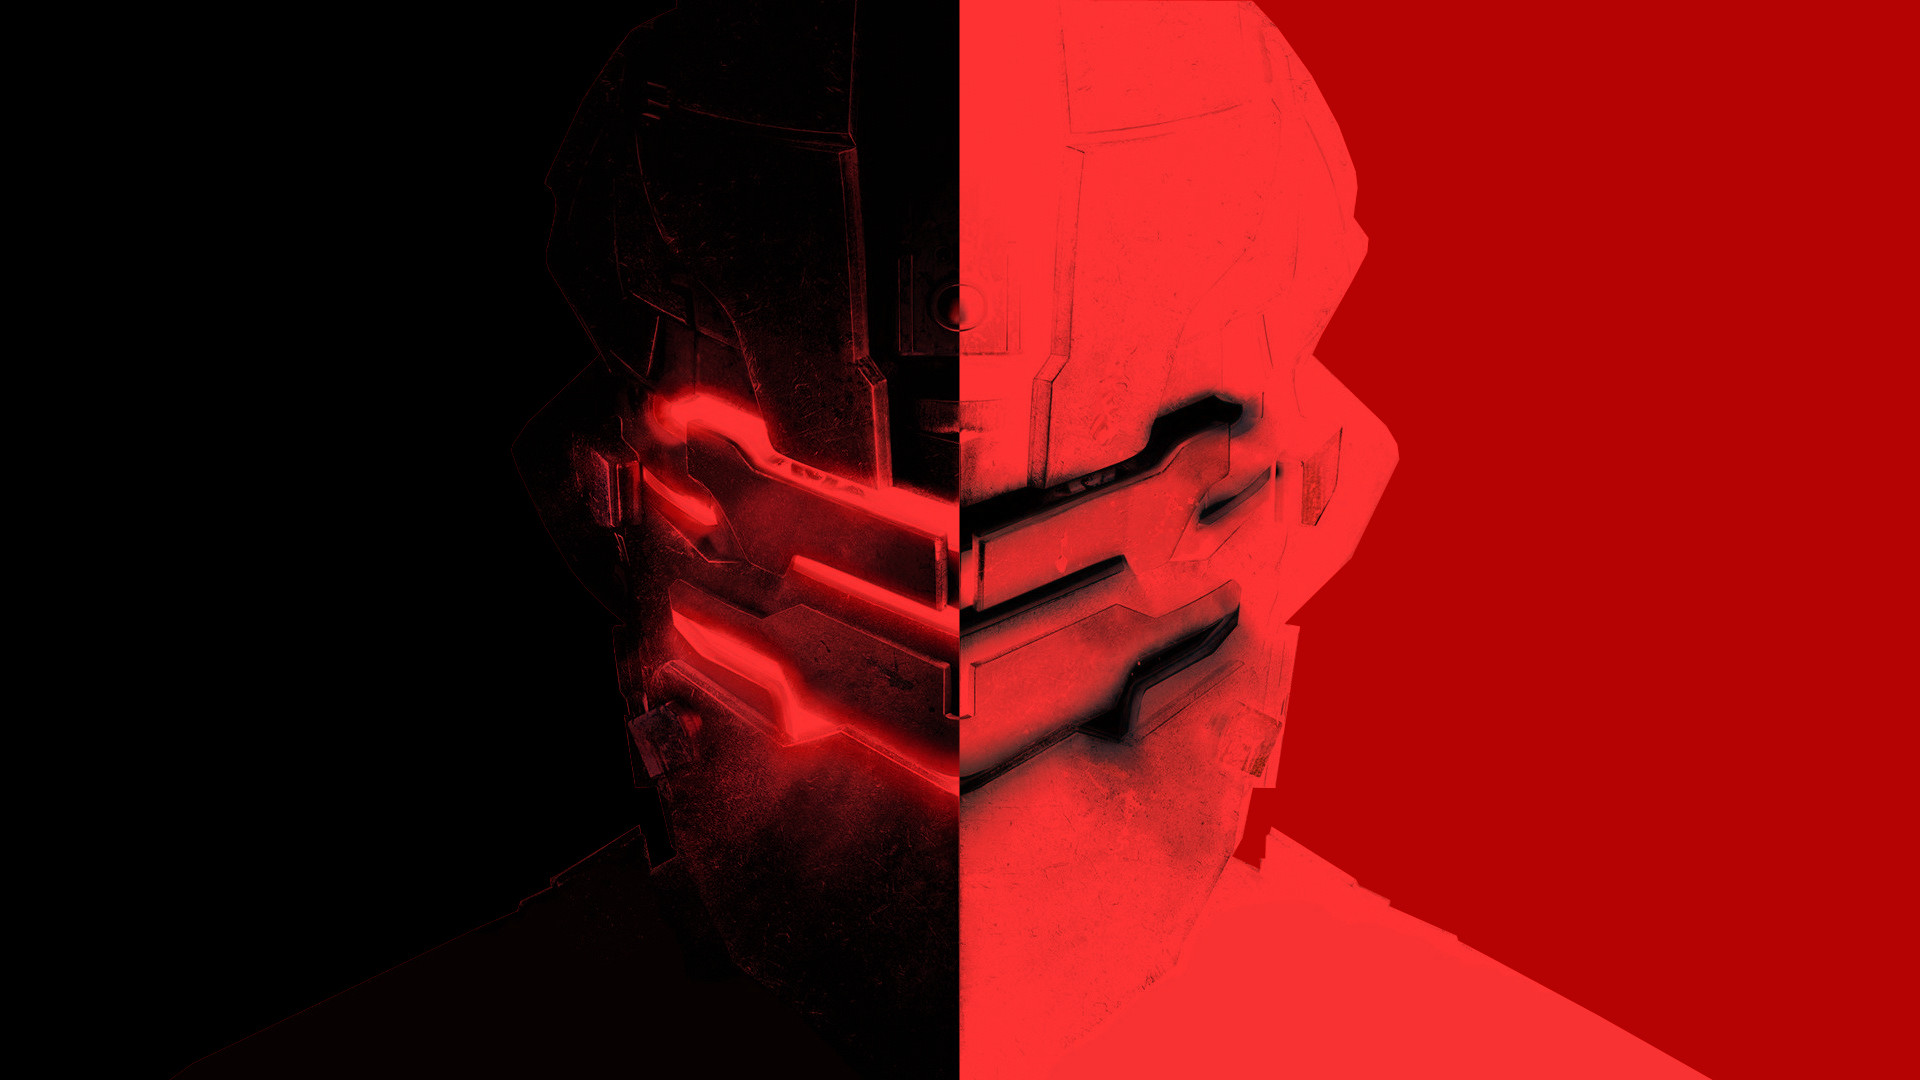 Kylo Ren Wallpaper Iphone X Black And Red 1080p Wallpaper 68 Images